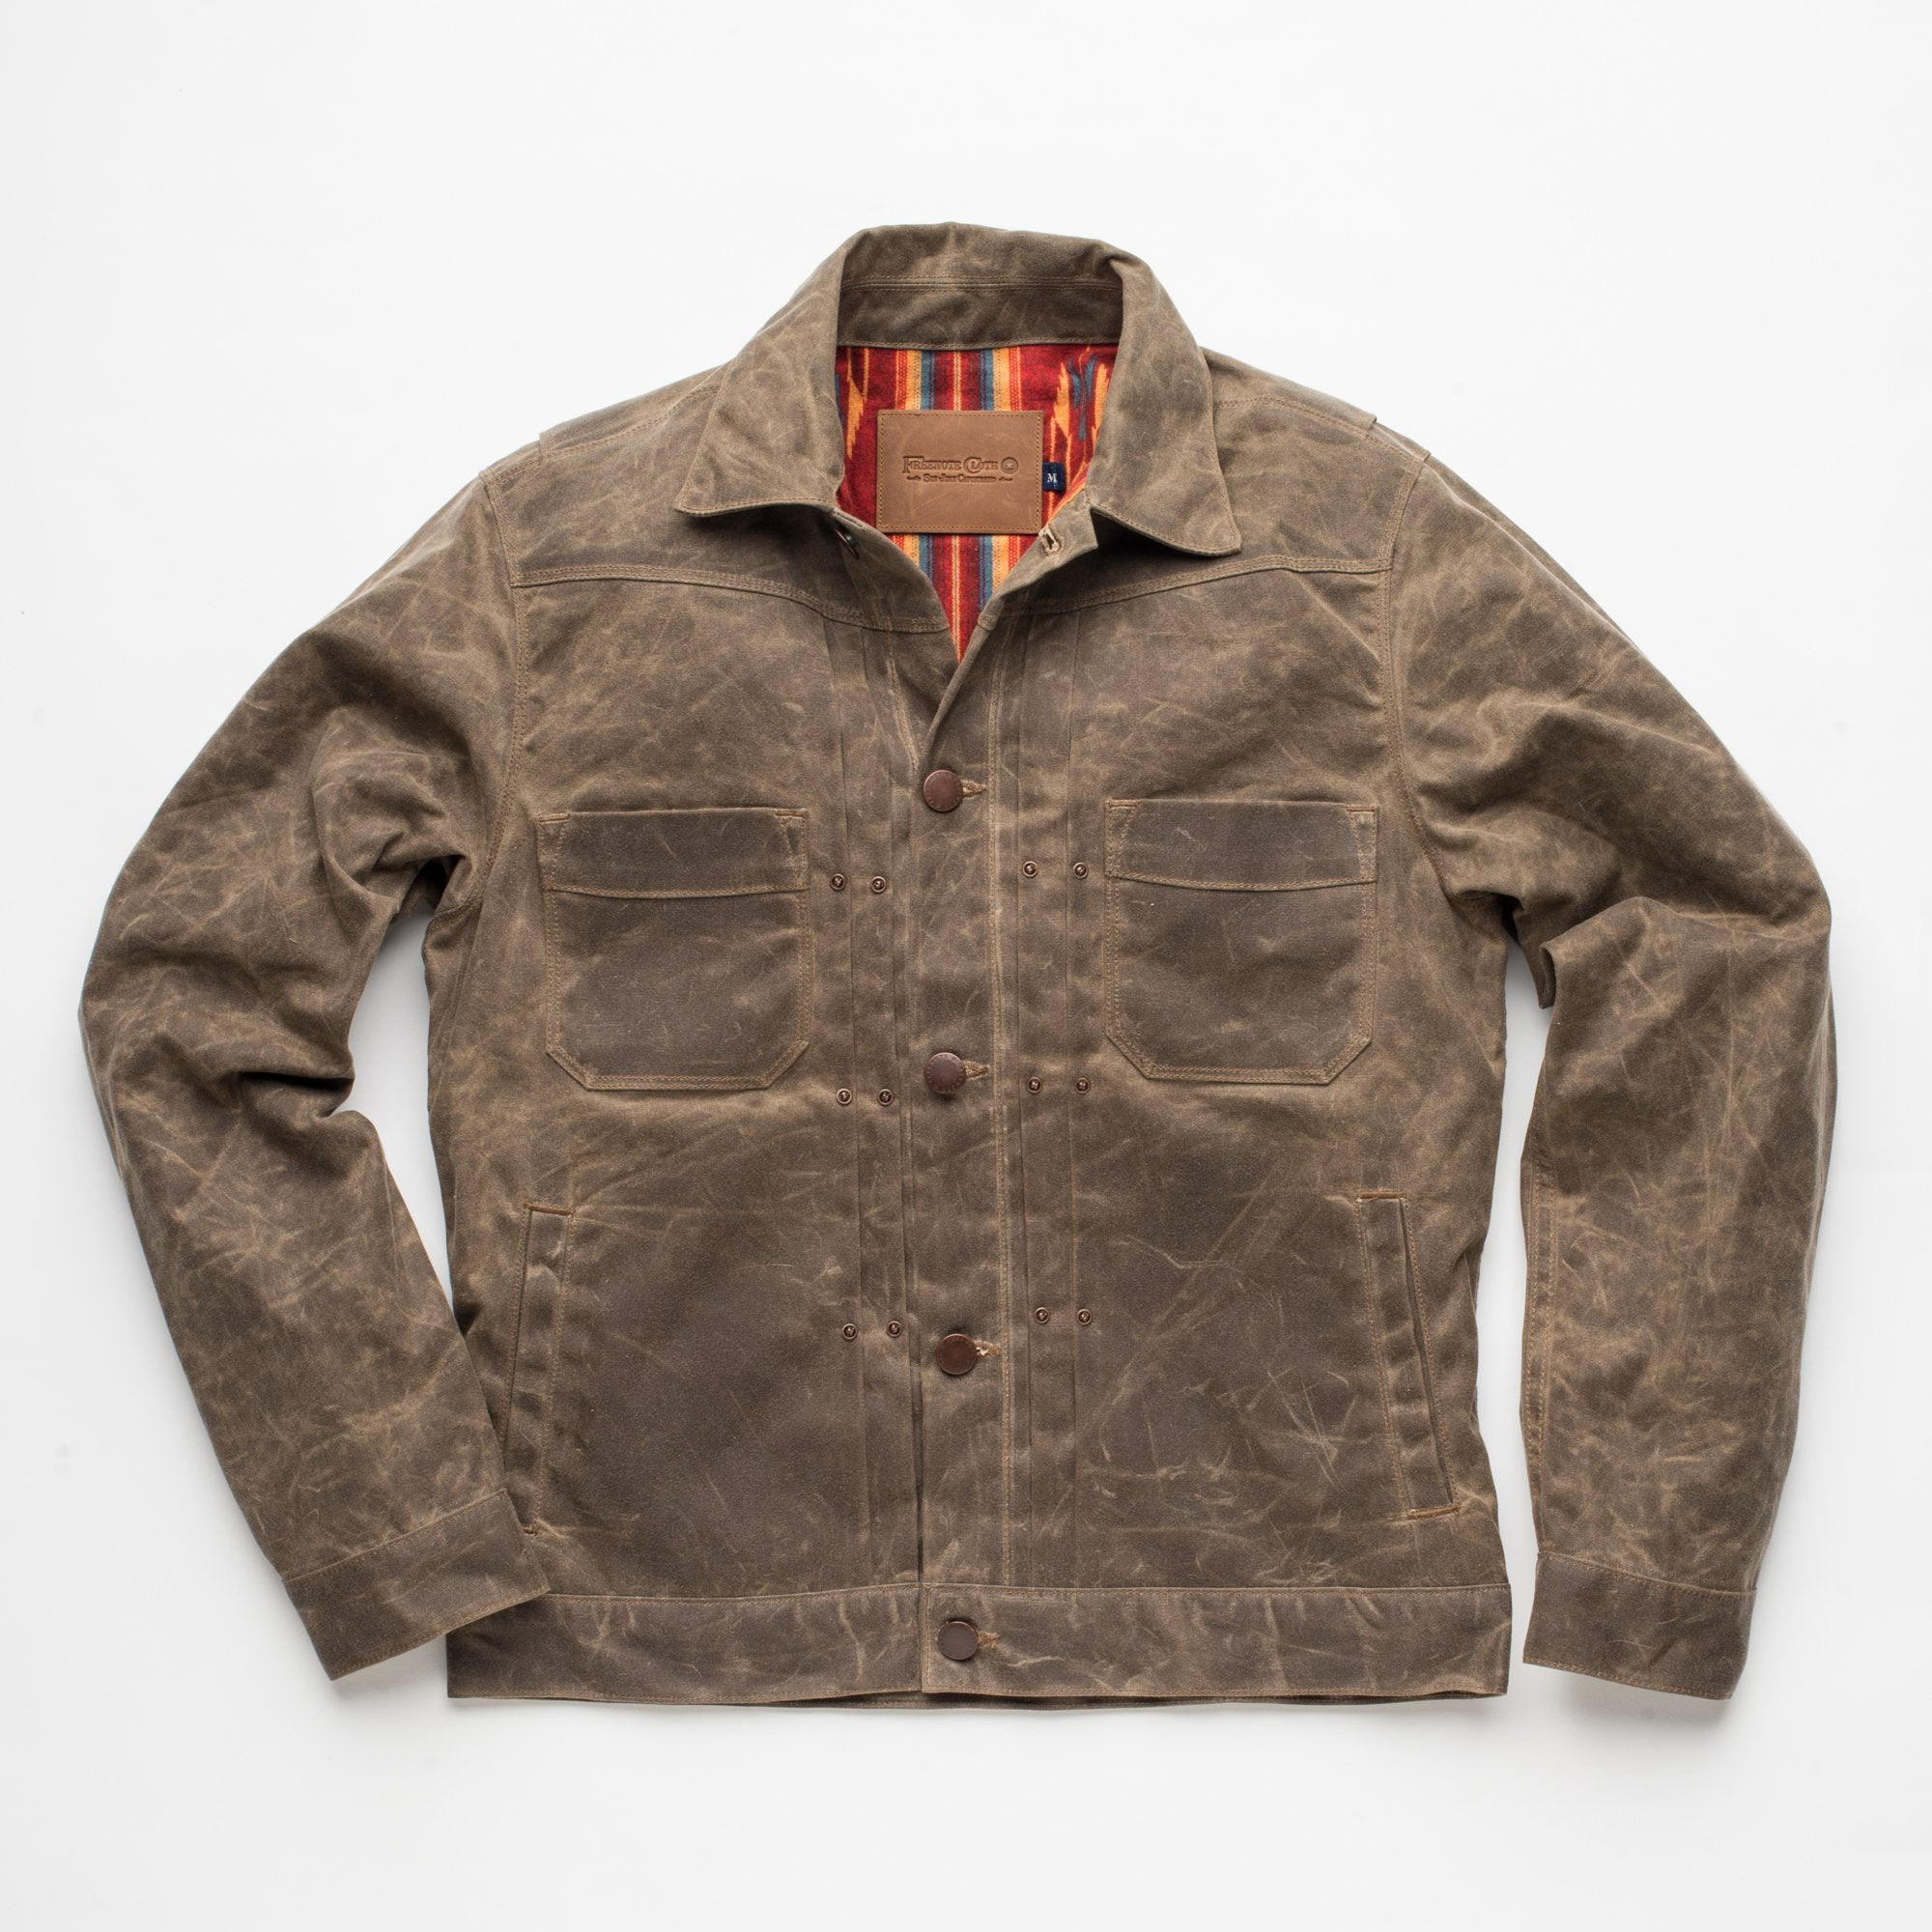 Freenote - Riders Jacket Waxed Canvas Taupe - The Populess Company